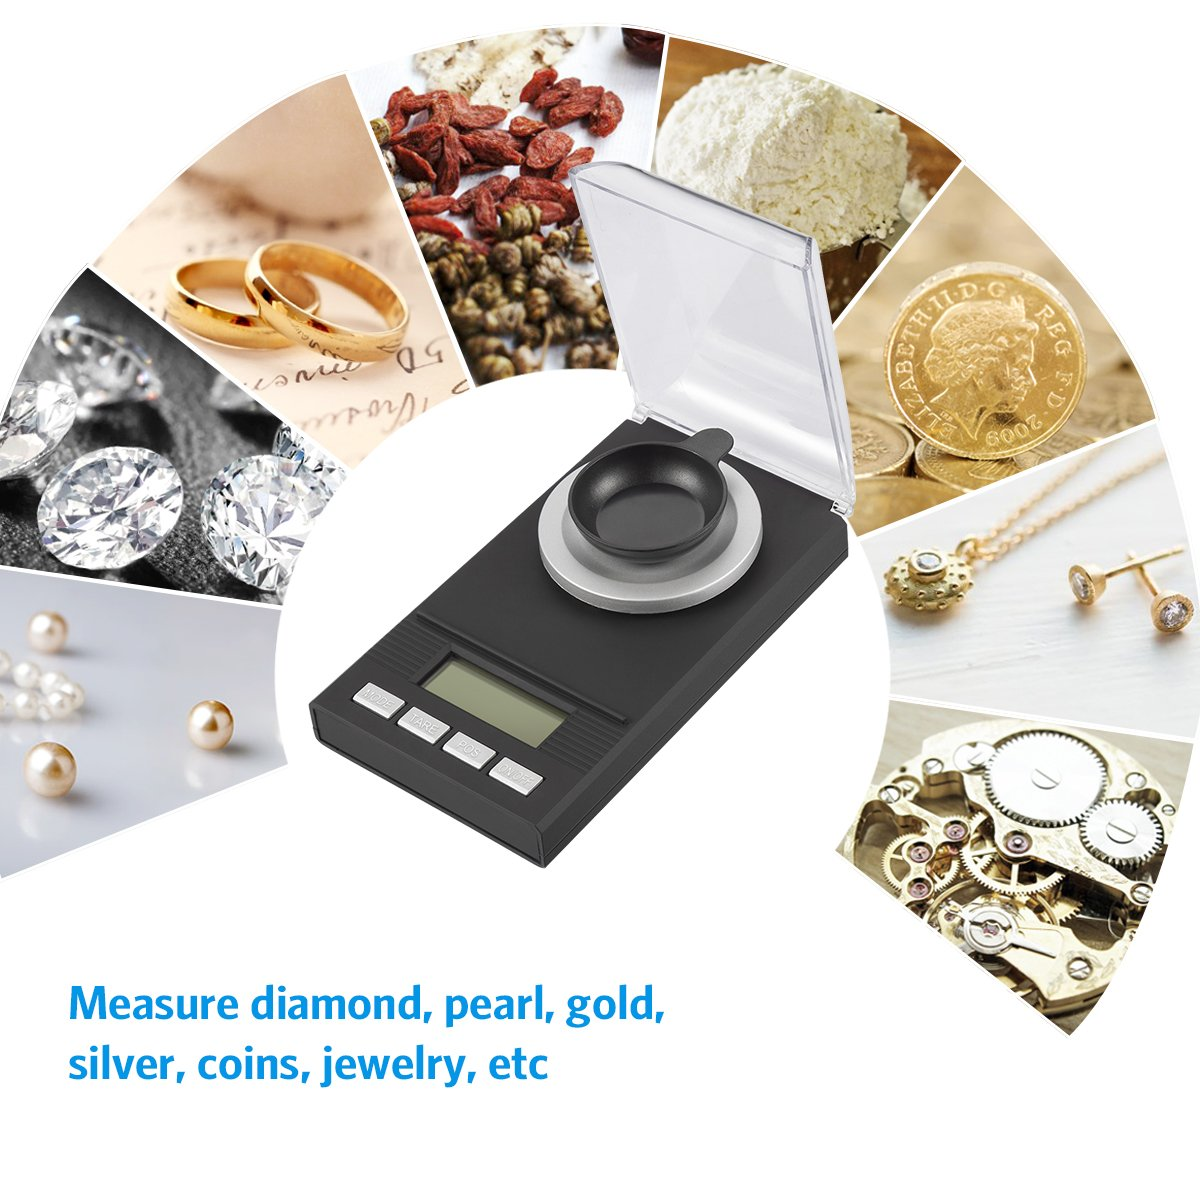 AMIR Digital Milligram Scale, Mini Precise Jewelry Scale, 50g/ 0.001g Pro Lab Scale with Calibration Weights Tweezers and Weighing Pans, 6 Units, Tare & PCS Function, Auto Off, for Gems, Diamond, etc by AMIR (Image #7)